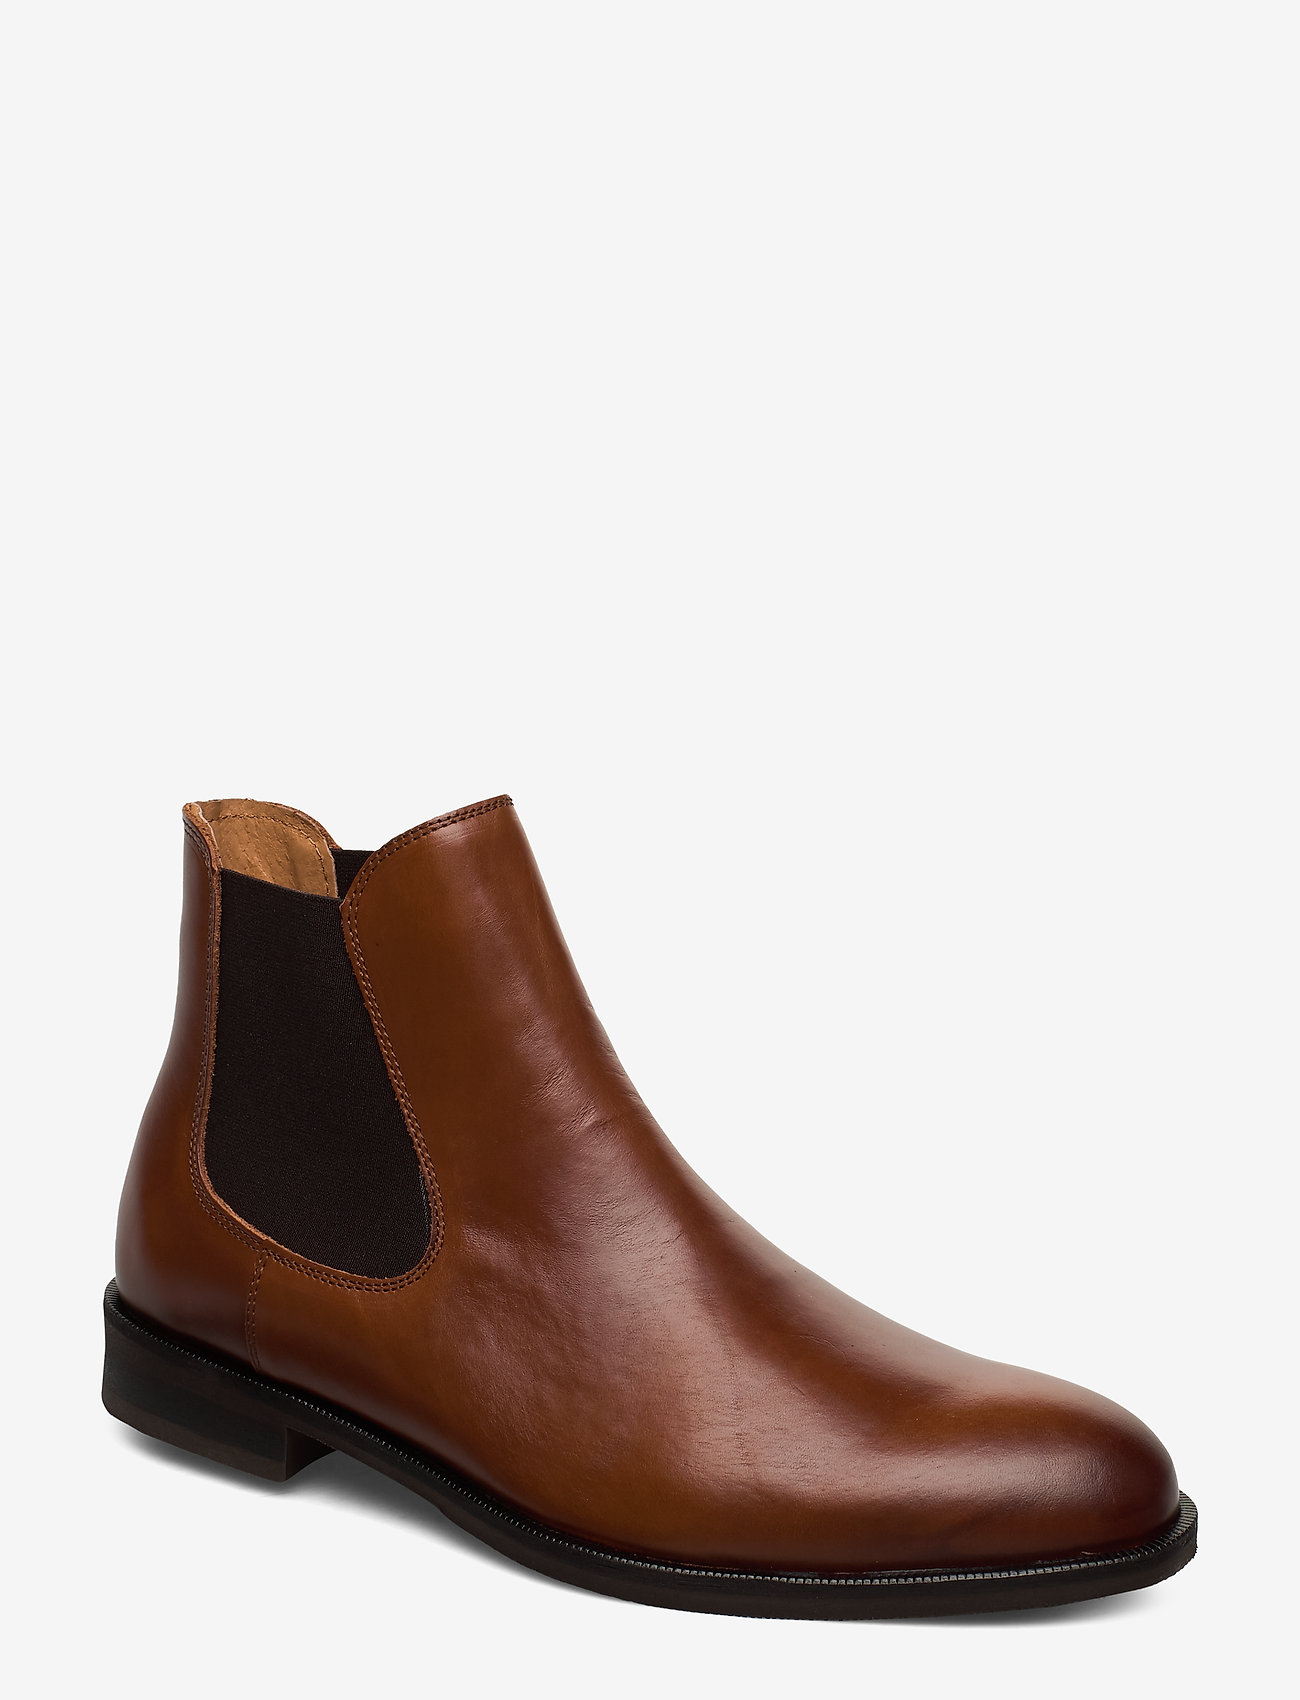 Selected Homme - SLHLOUIS LEATHER CHELSEA BOOT B NOOS - chelsea boots - cognac - 0